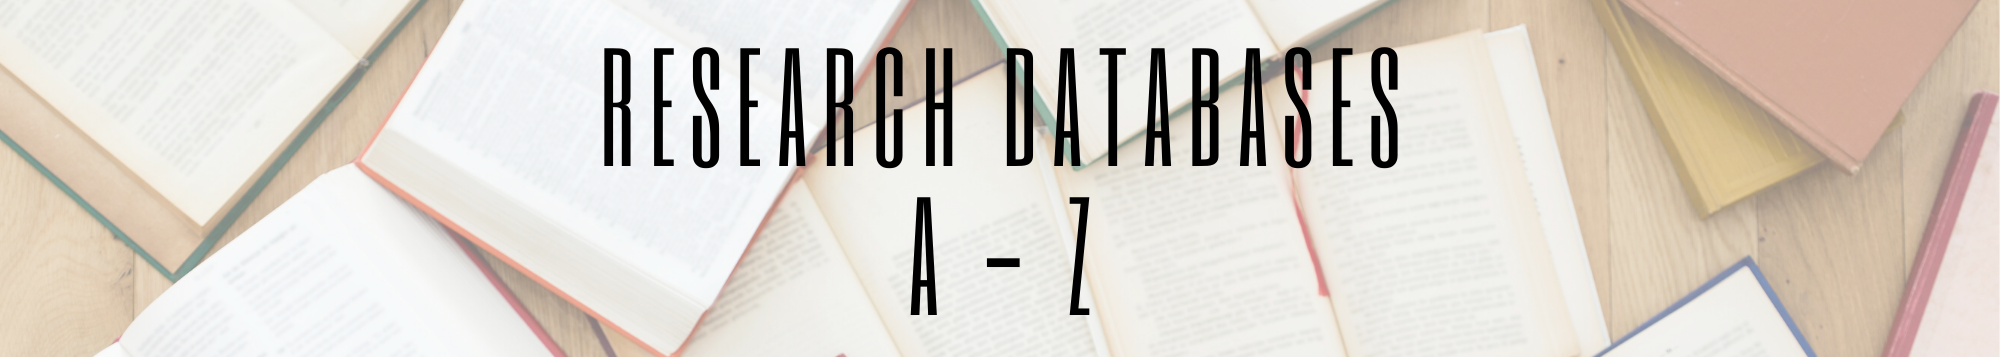 Research Databases A - Z